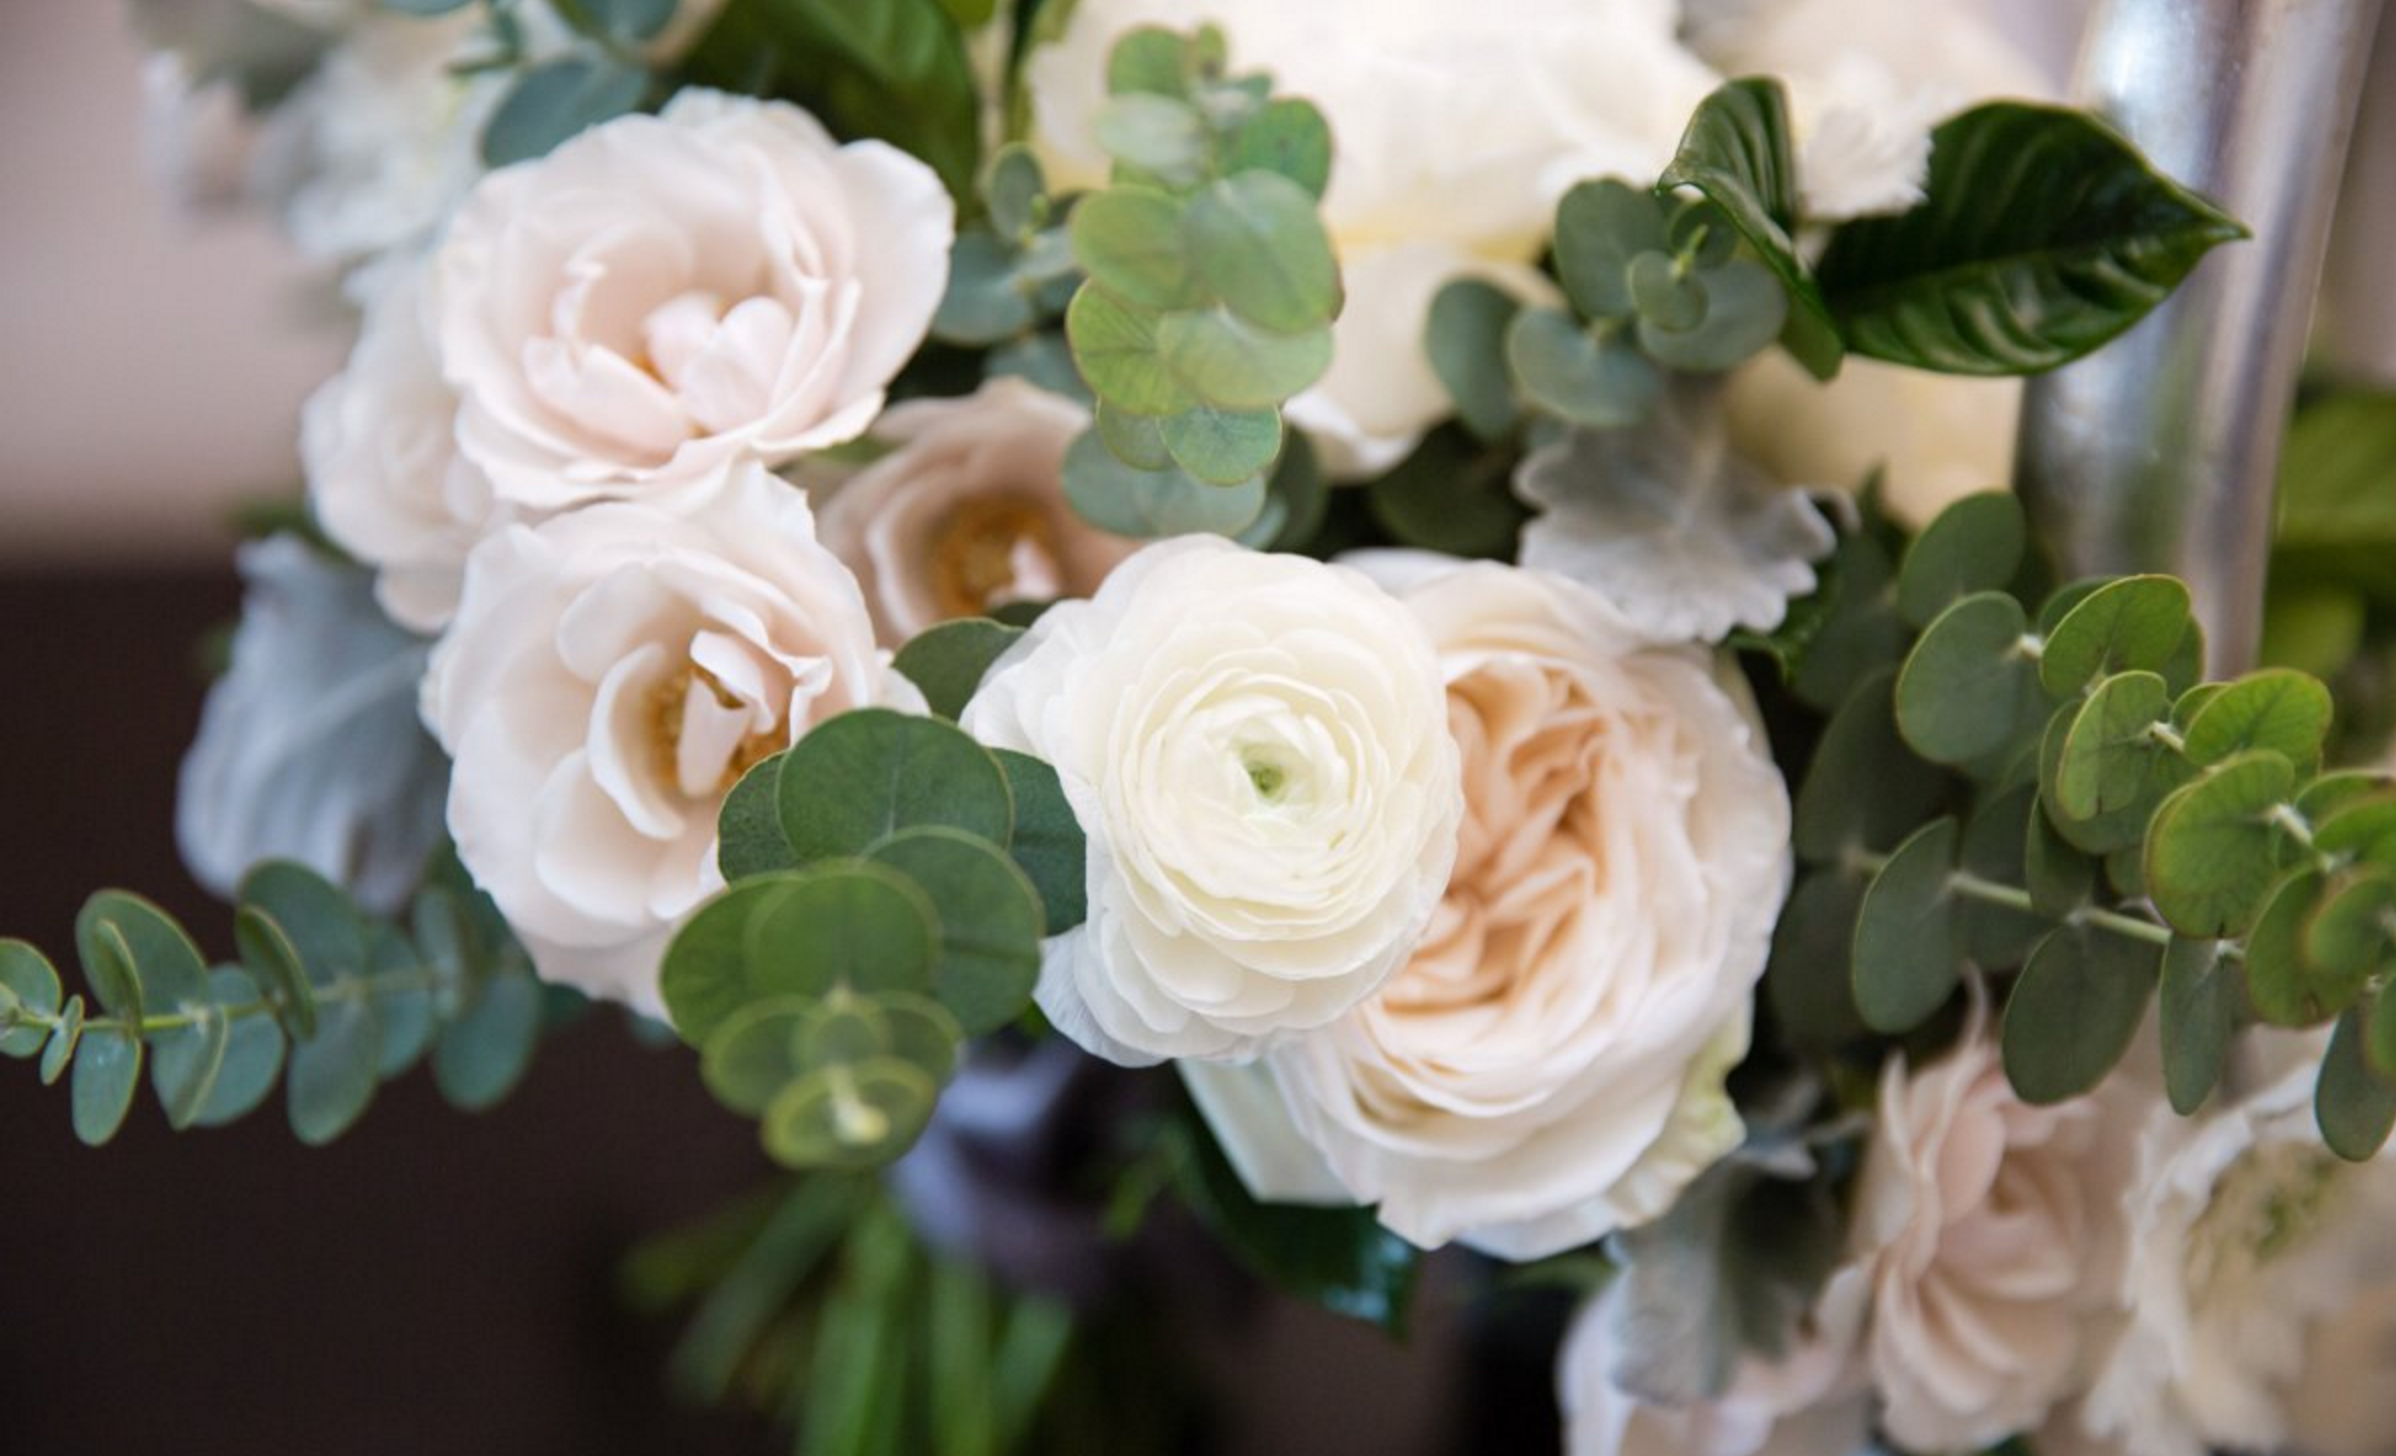 Garden romantic ivory & blush bridal bouquet of ranunculus & garden   roses by San Diego wedding florist, Compass Floral.